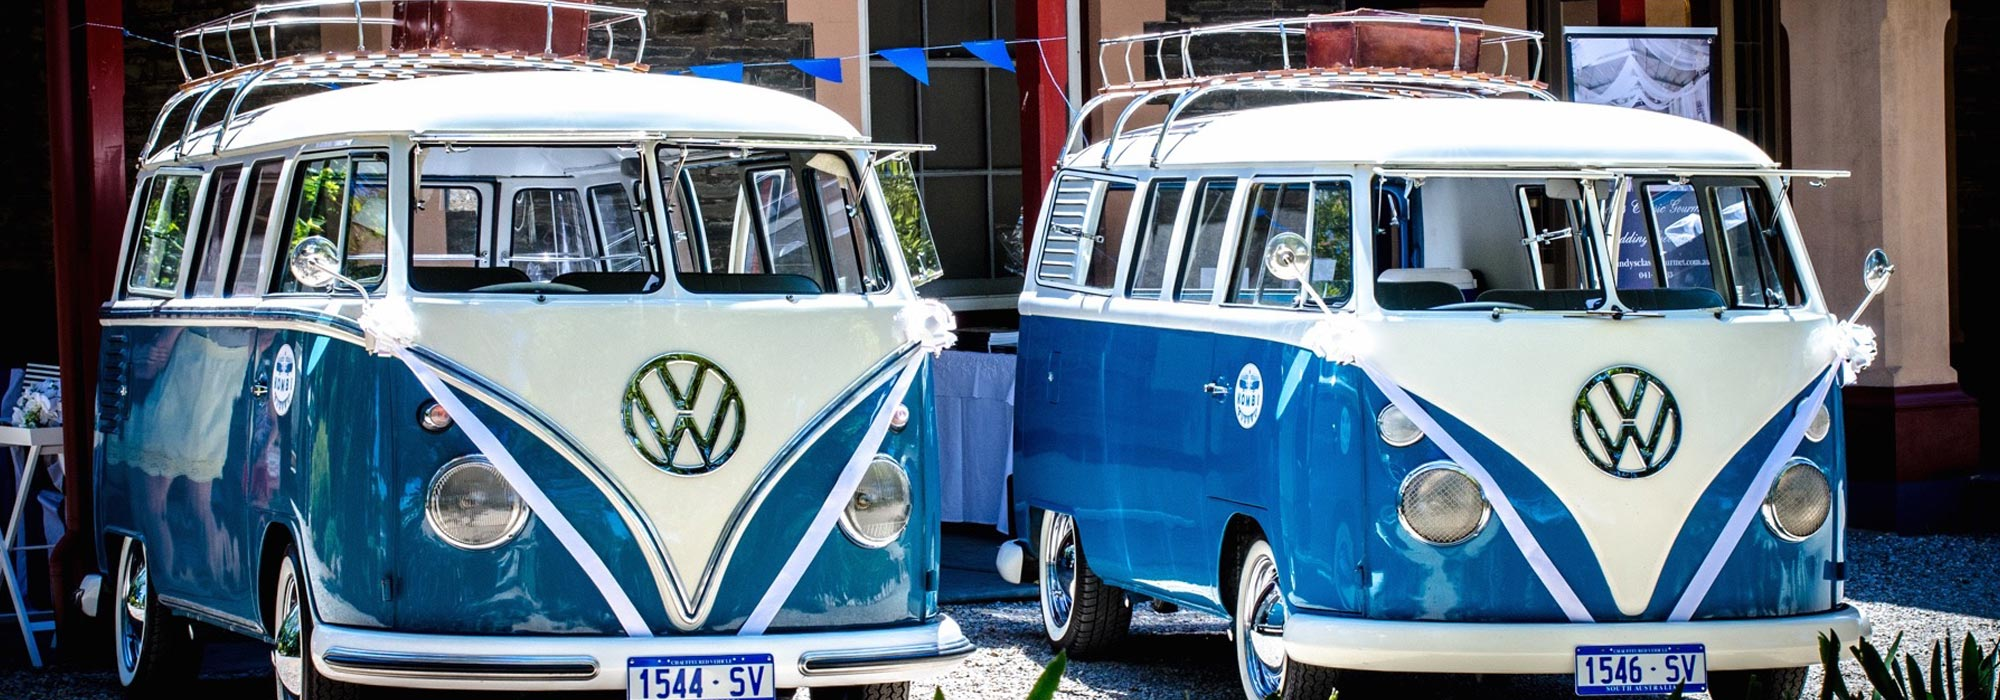 'Django' & 'Cassidy' our immaculately restored Volkswagen Kombi Vans available for hire, perfect for weddings, special events, birthdays and more.